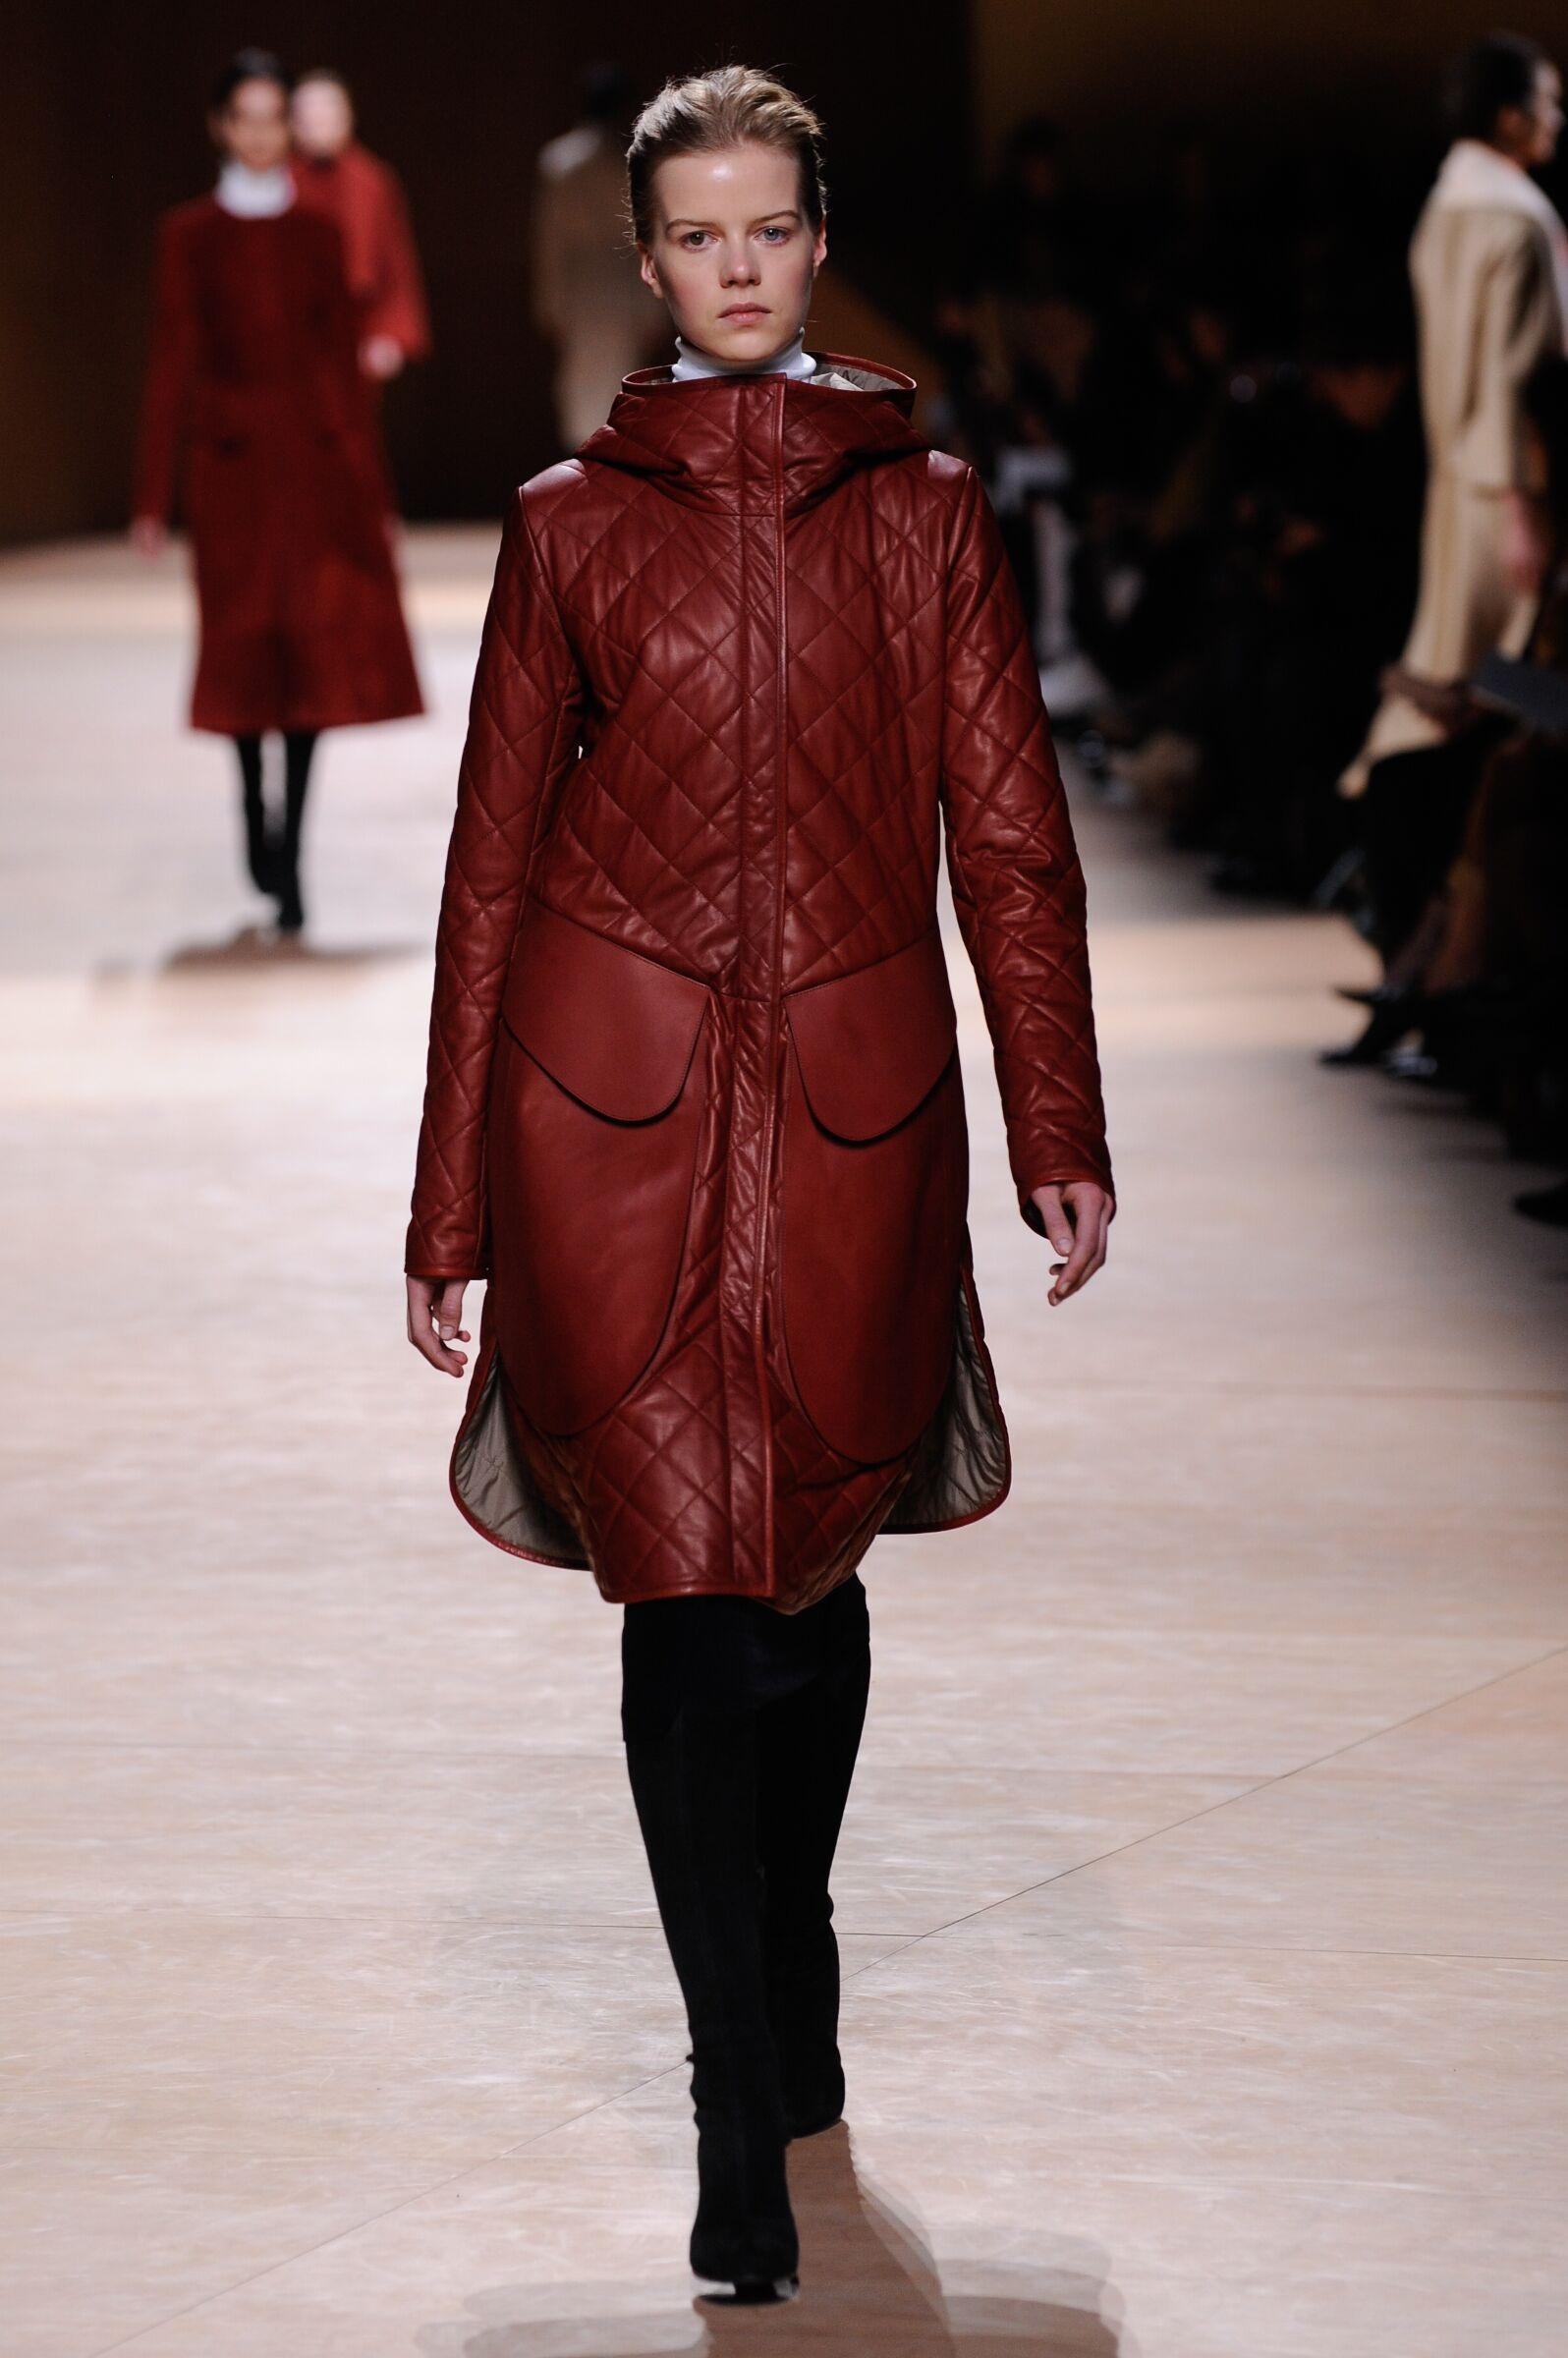 Catwalk Hermès Collection Fashion Show Winter 2015